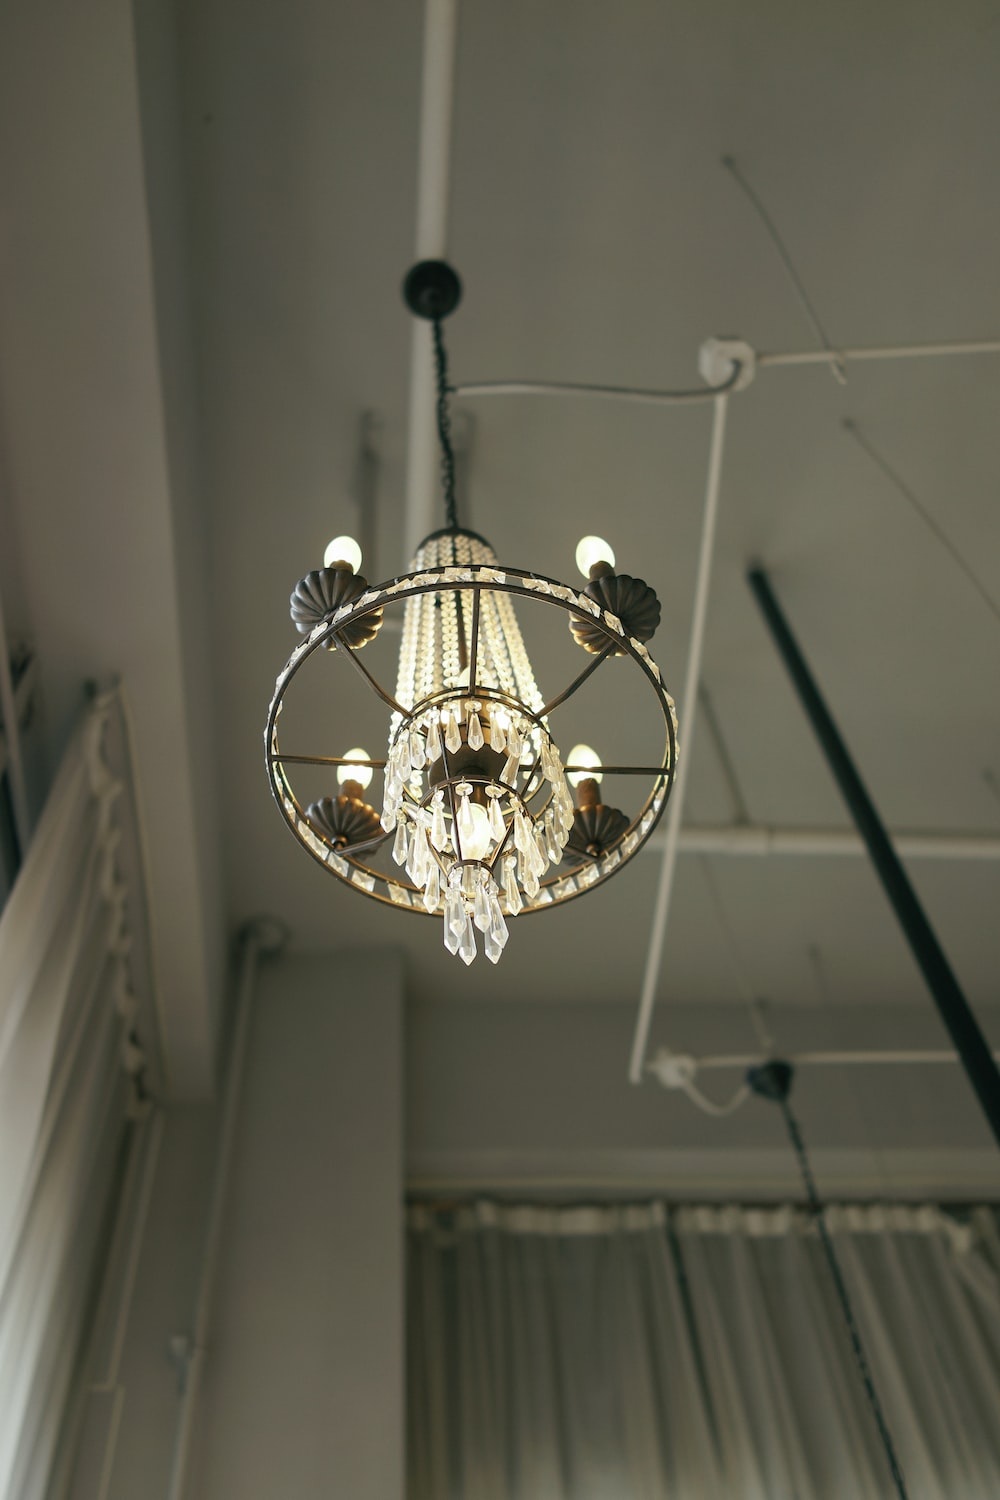 low-angle photography of glass chandelier